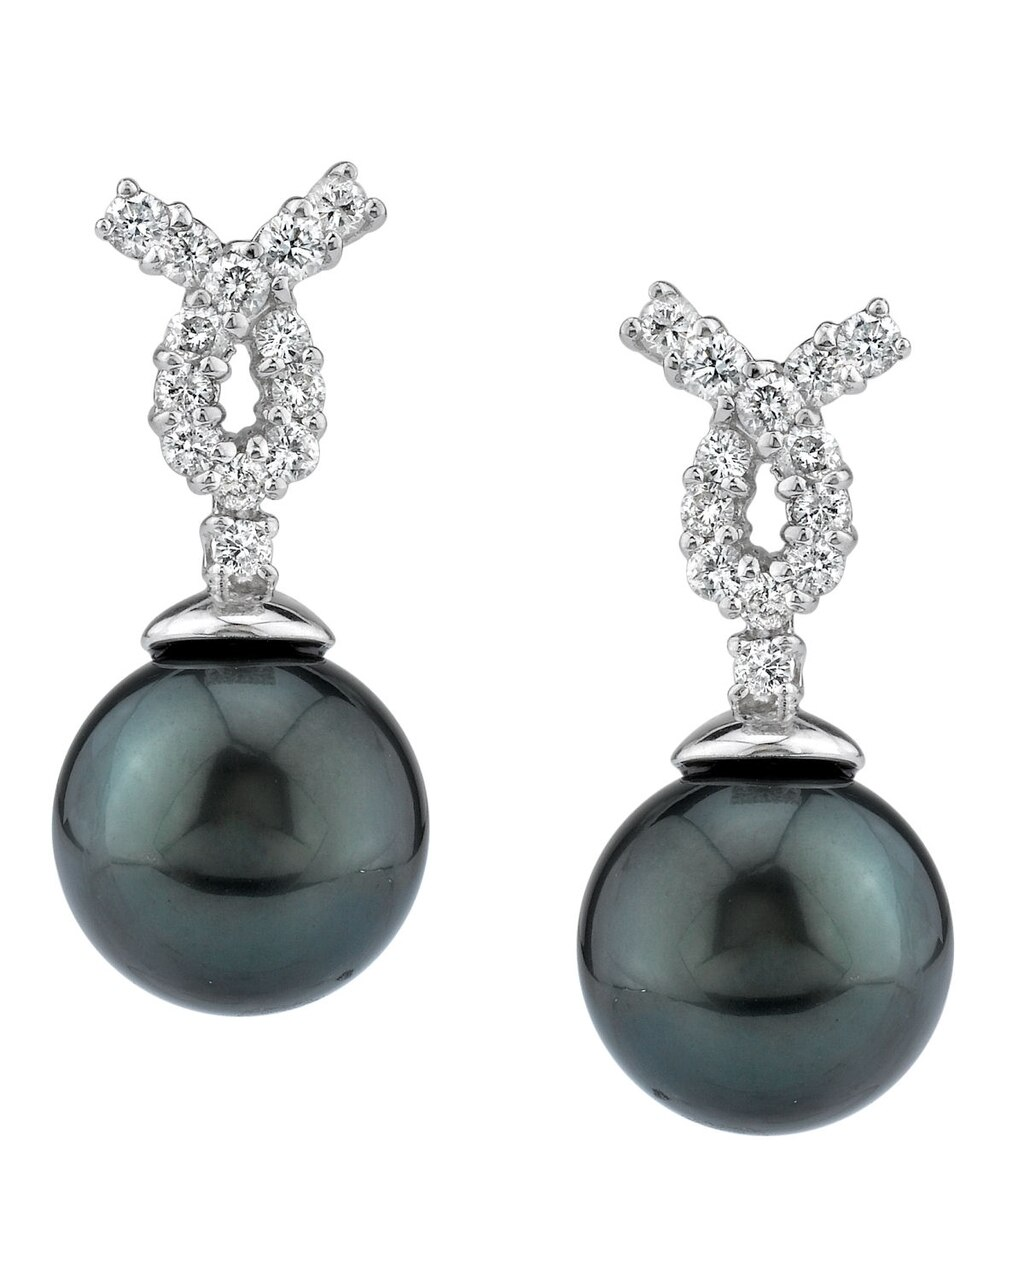 Exquisite earrings feature two 11.0-12.0mm  Tahitian South Sea pearls, selected for their luminous luster